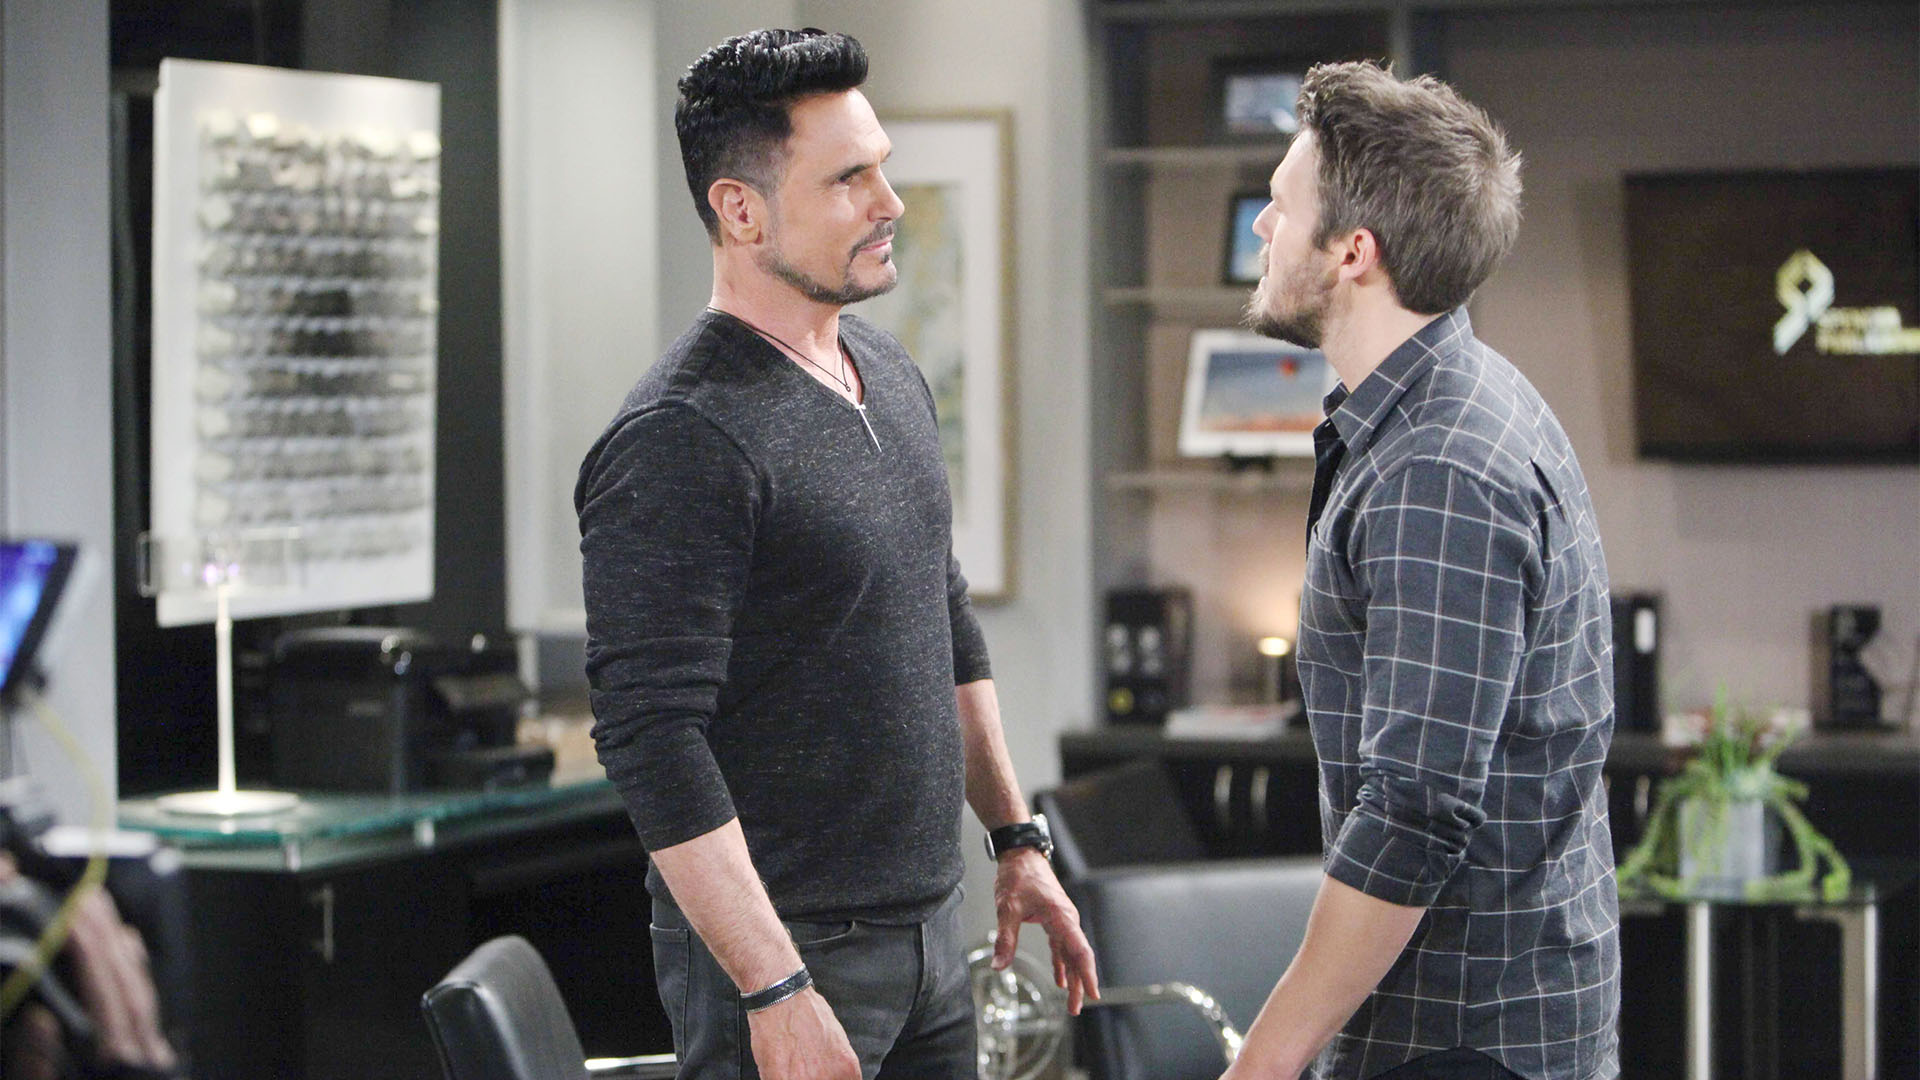 Angry and confrontational, Liam becomes the aggressor when he comes face-to-face with Bill.